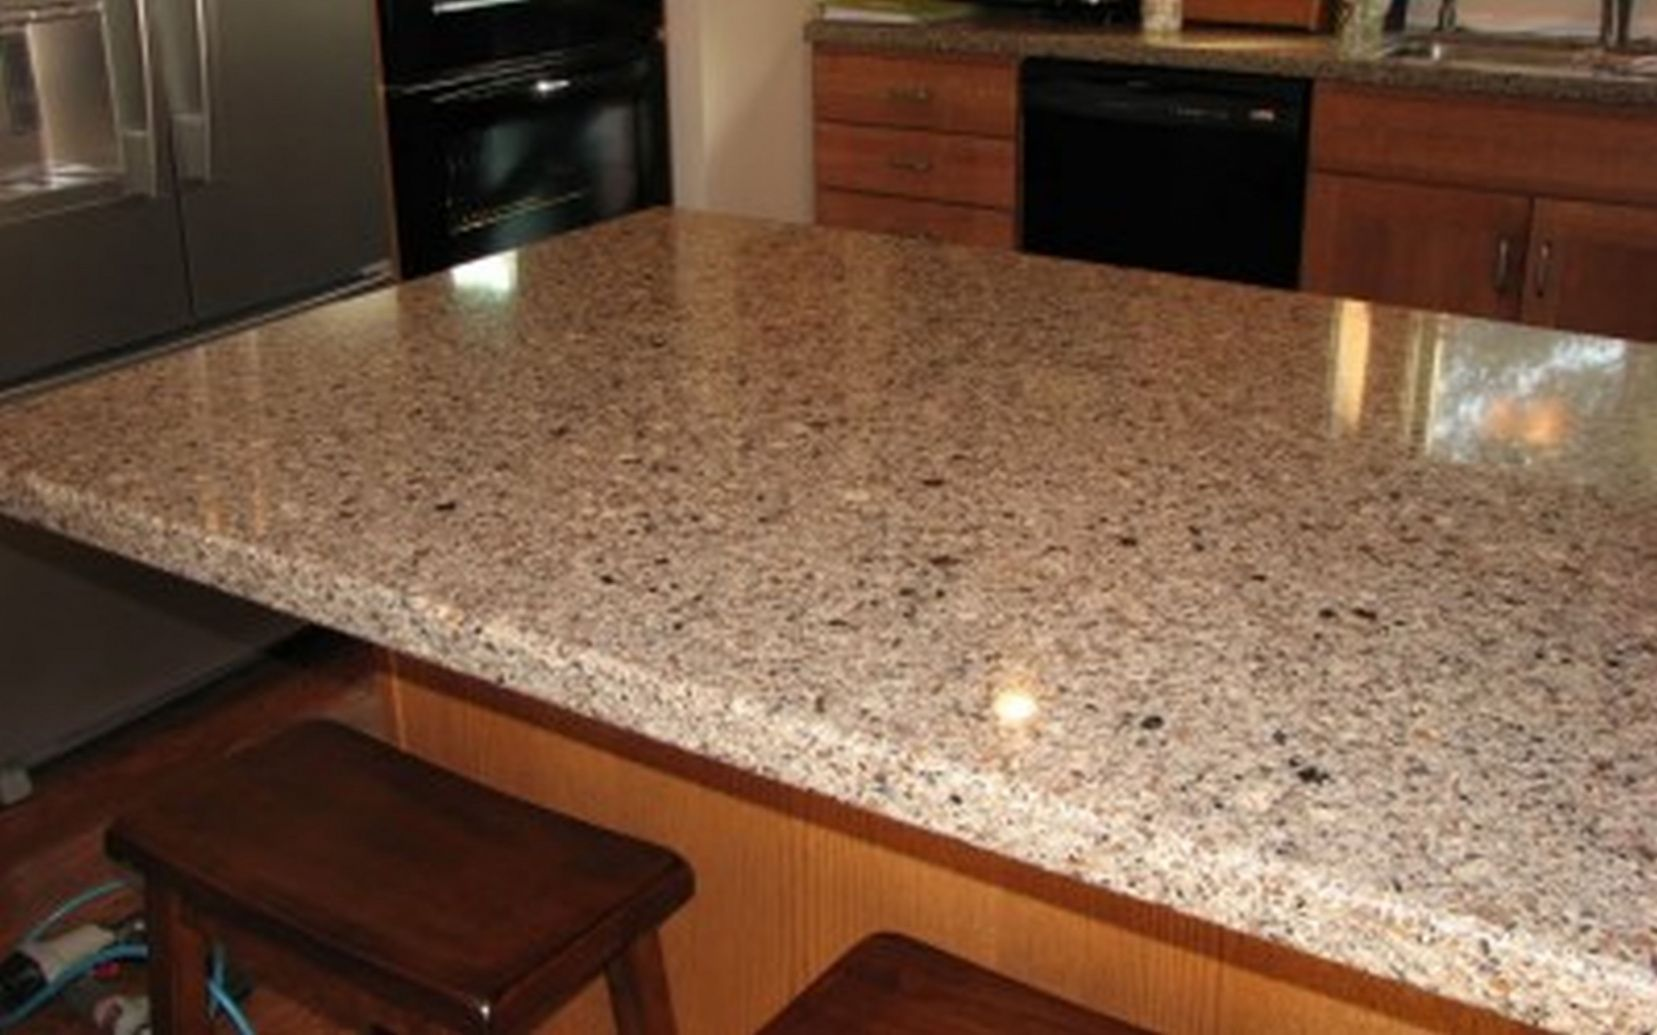 77 Home Depot Quartz Countertop Prices Remodeling Ideas For Kitchens Check Mo Check In 2020 Cost Of Kitchen Countertops Granite Countertops Kitchen Countertops